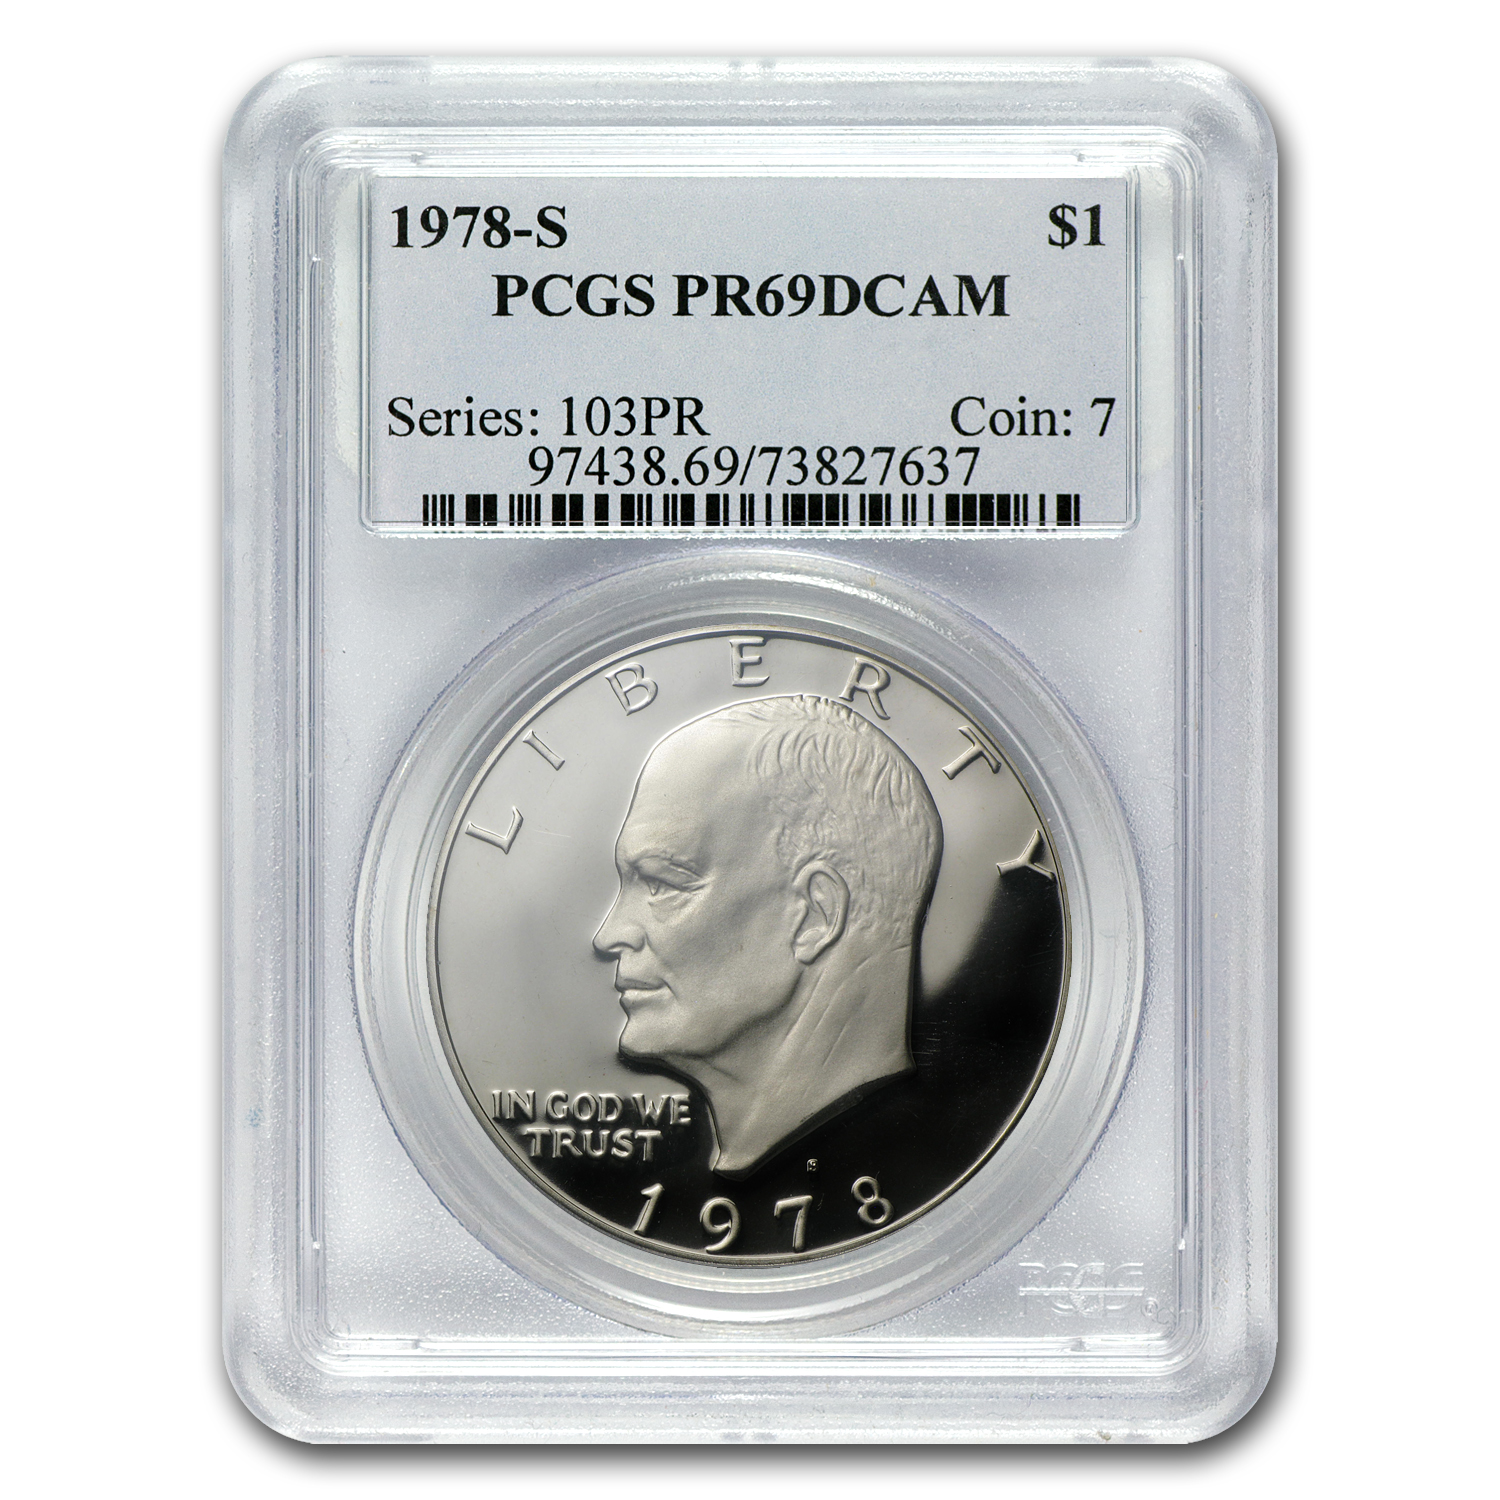 1971-S to 1978-S 11-Coin Eisenhower Dollar Proof Set PR-69 PCGS